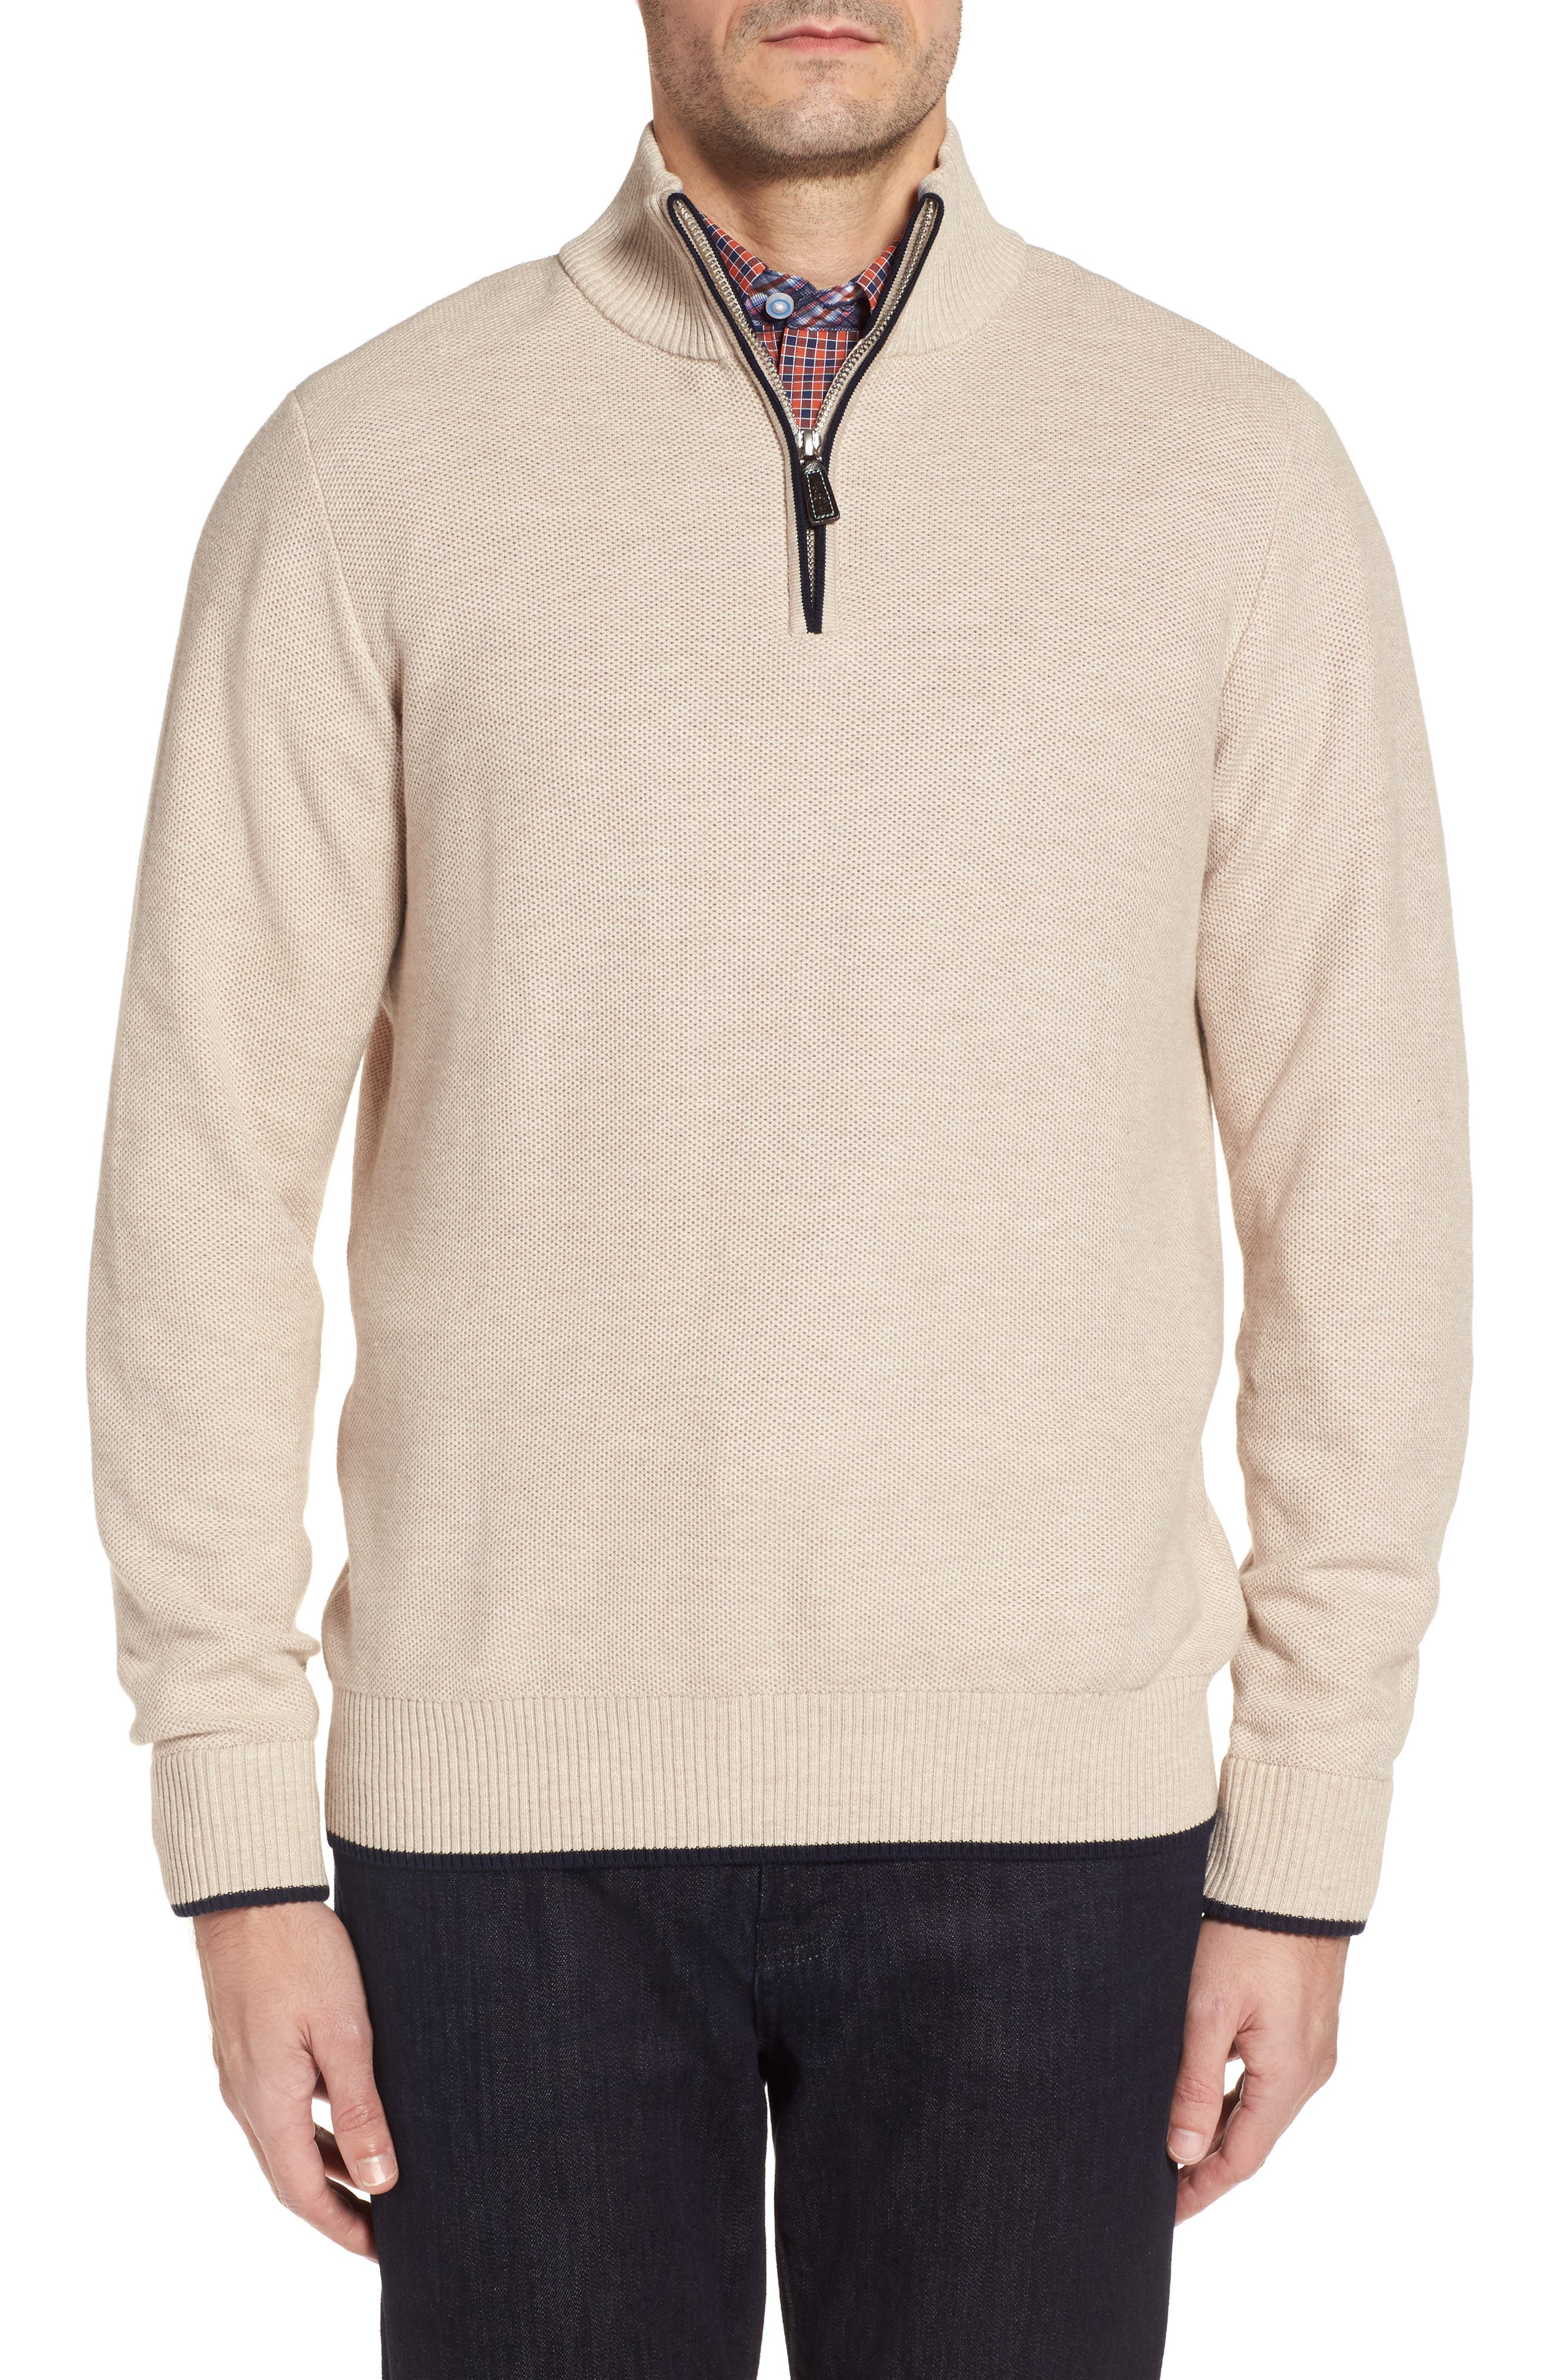 Sikes Tipped Quarter Zip Sweater,                             Main thumbnail 1, color,